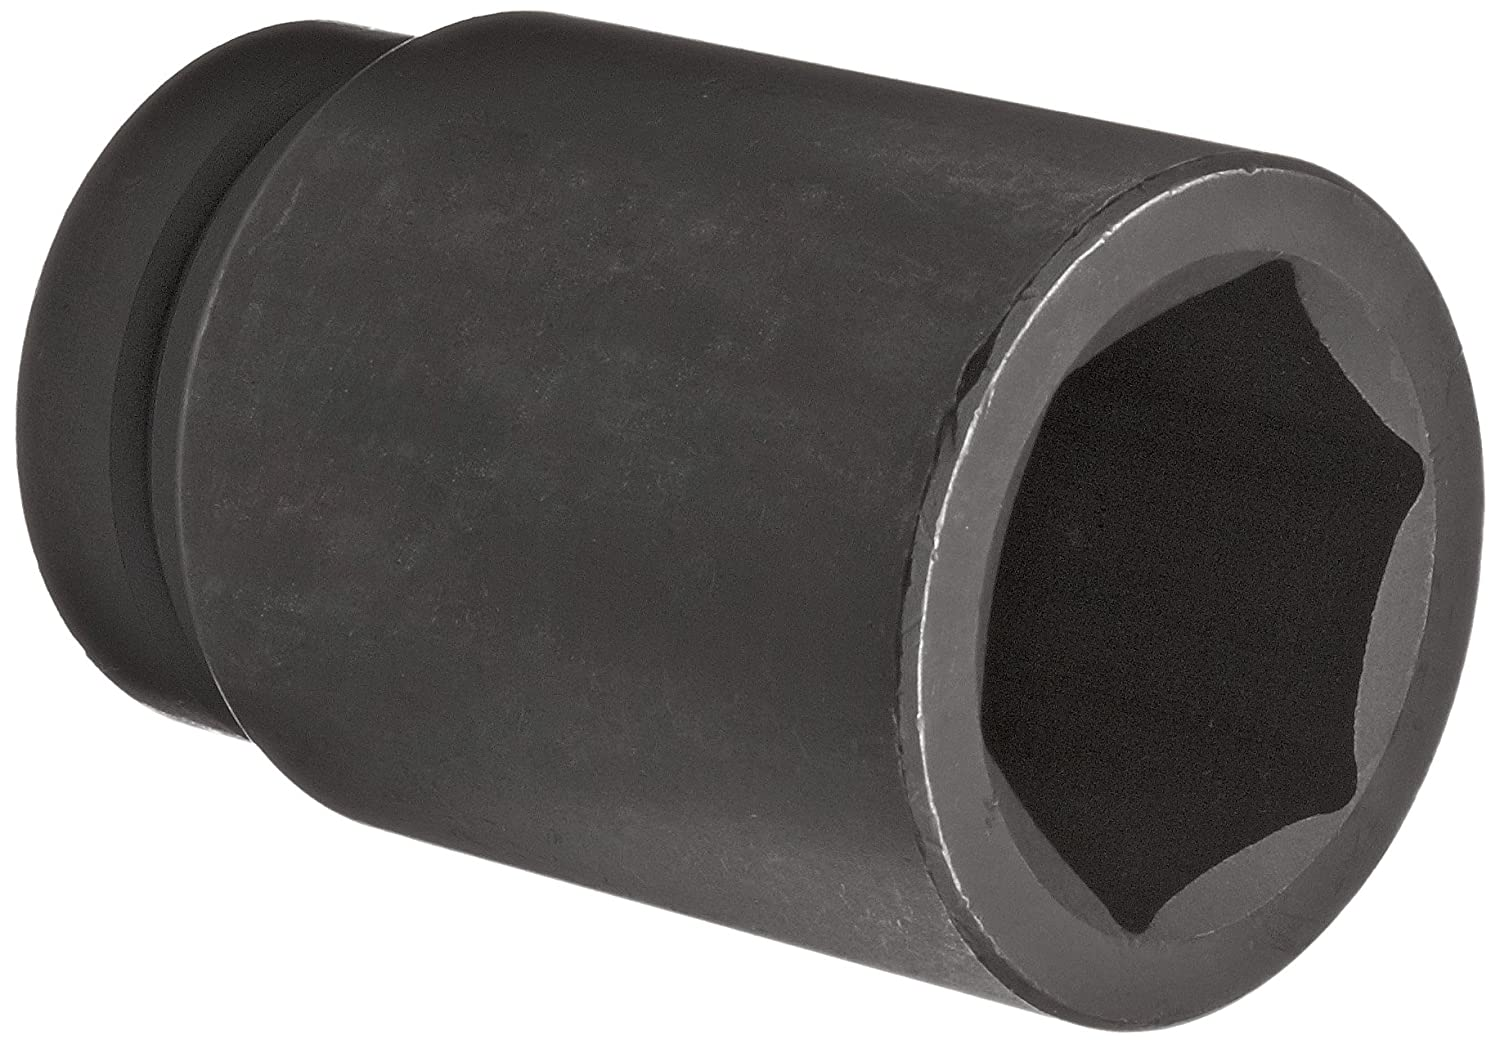 Martin 17658 Forged Alloy Steel 1-13/16 Type III Opening 1 Power Impact Drive Socket, 6 Points Deep, 4-1/8 Overall Length, Industrial Black Finish by Martin  B002M89J6E